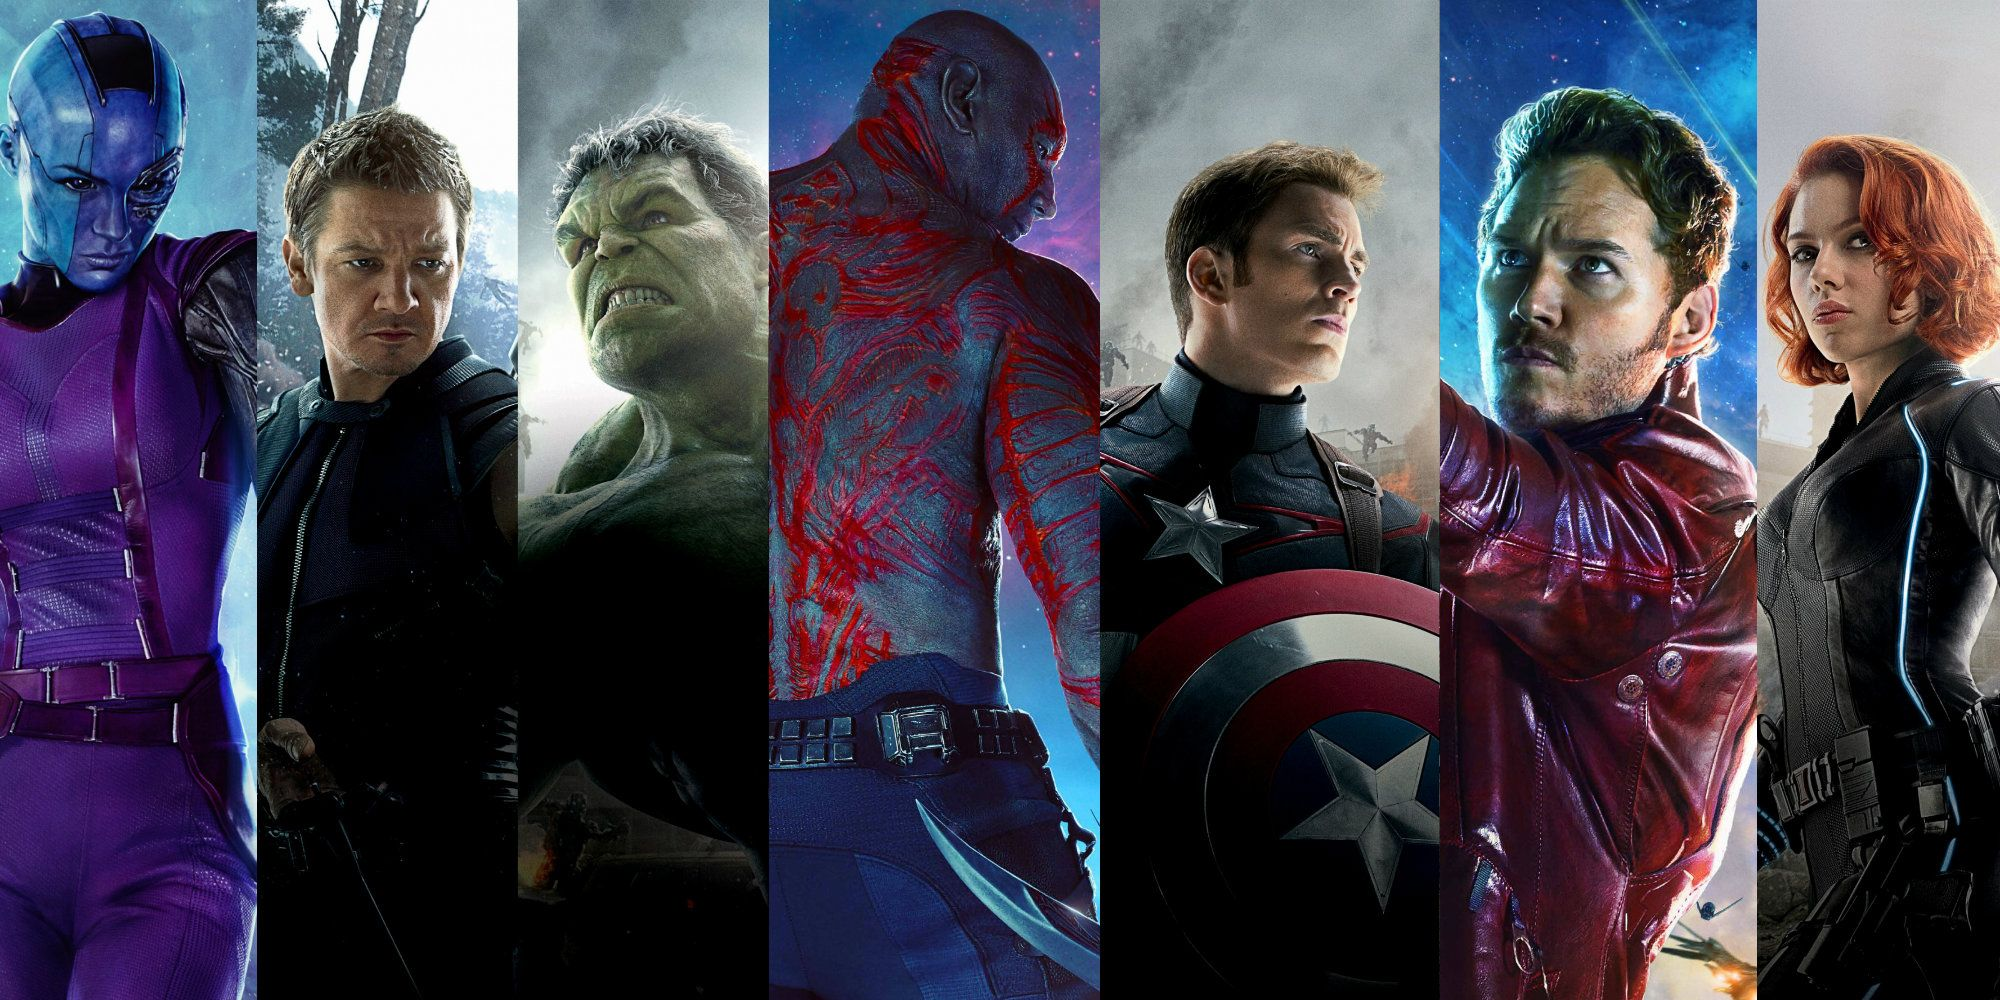 The Avengers: How The Avengers & Guardians Of The Galaxy Could Meet In